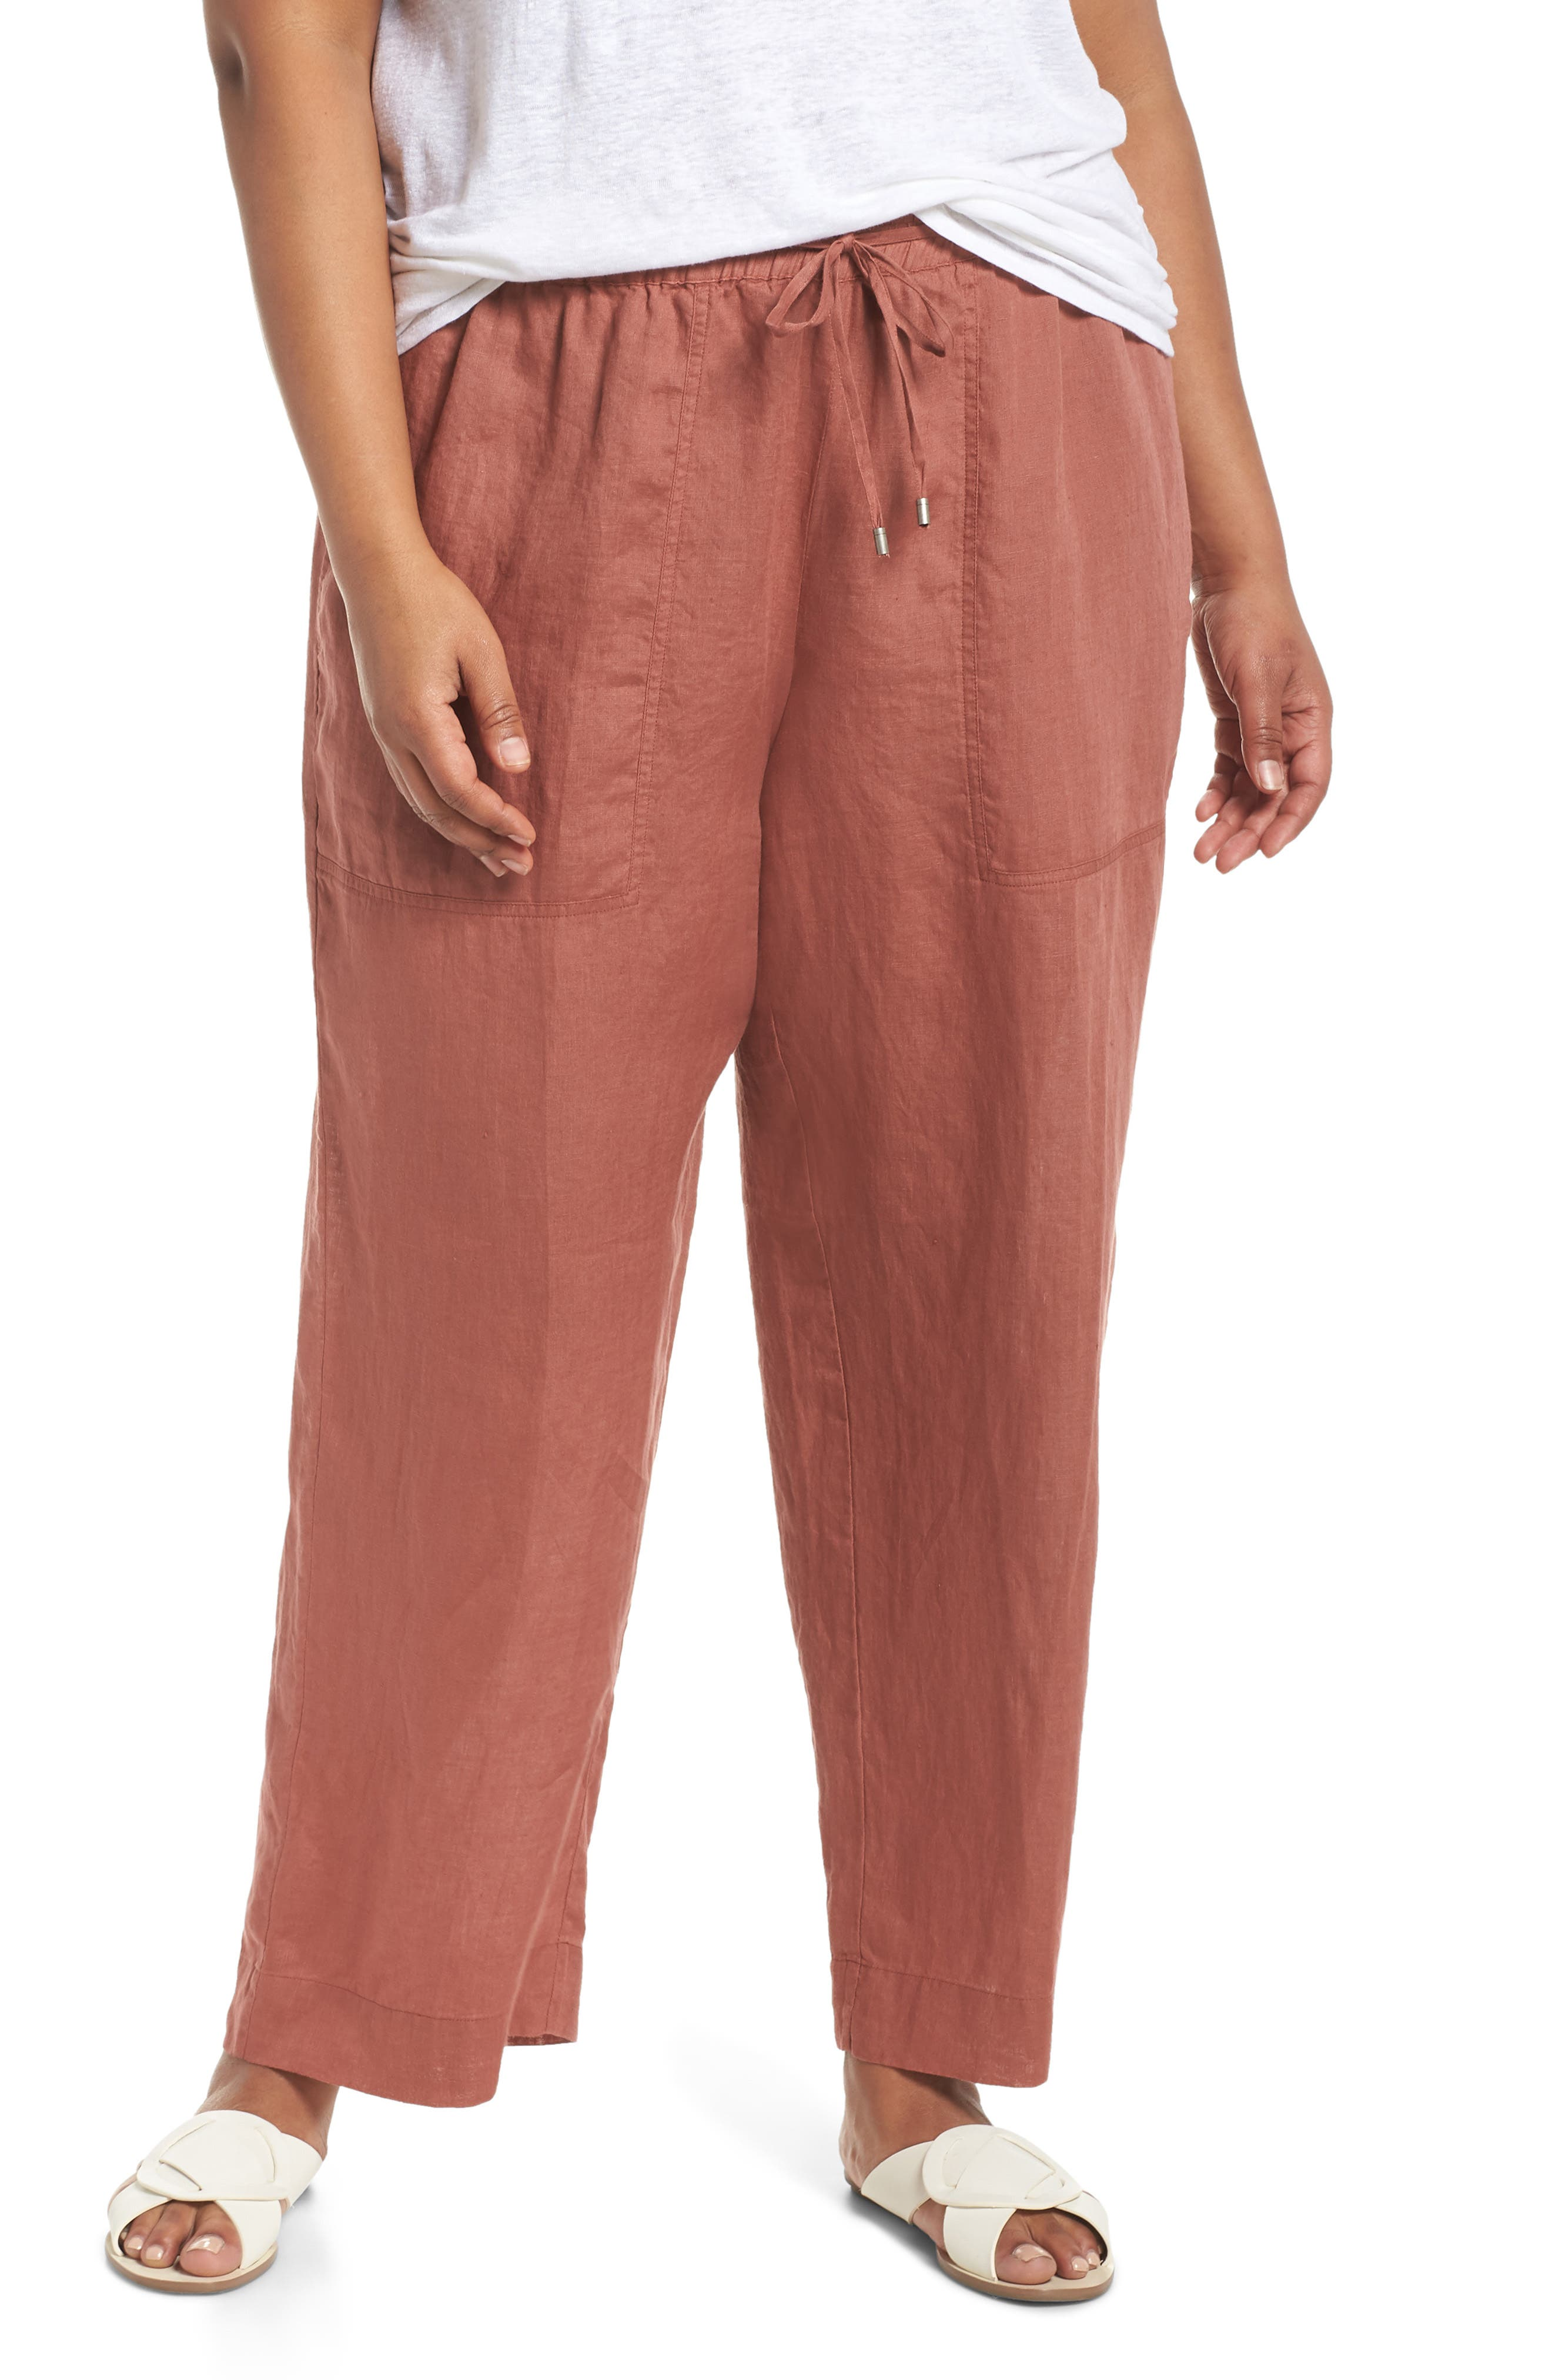 Organic Linen Ankle Pants,                         Main,                         color, Russet